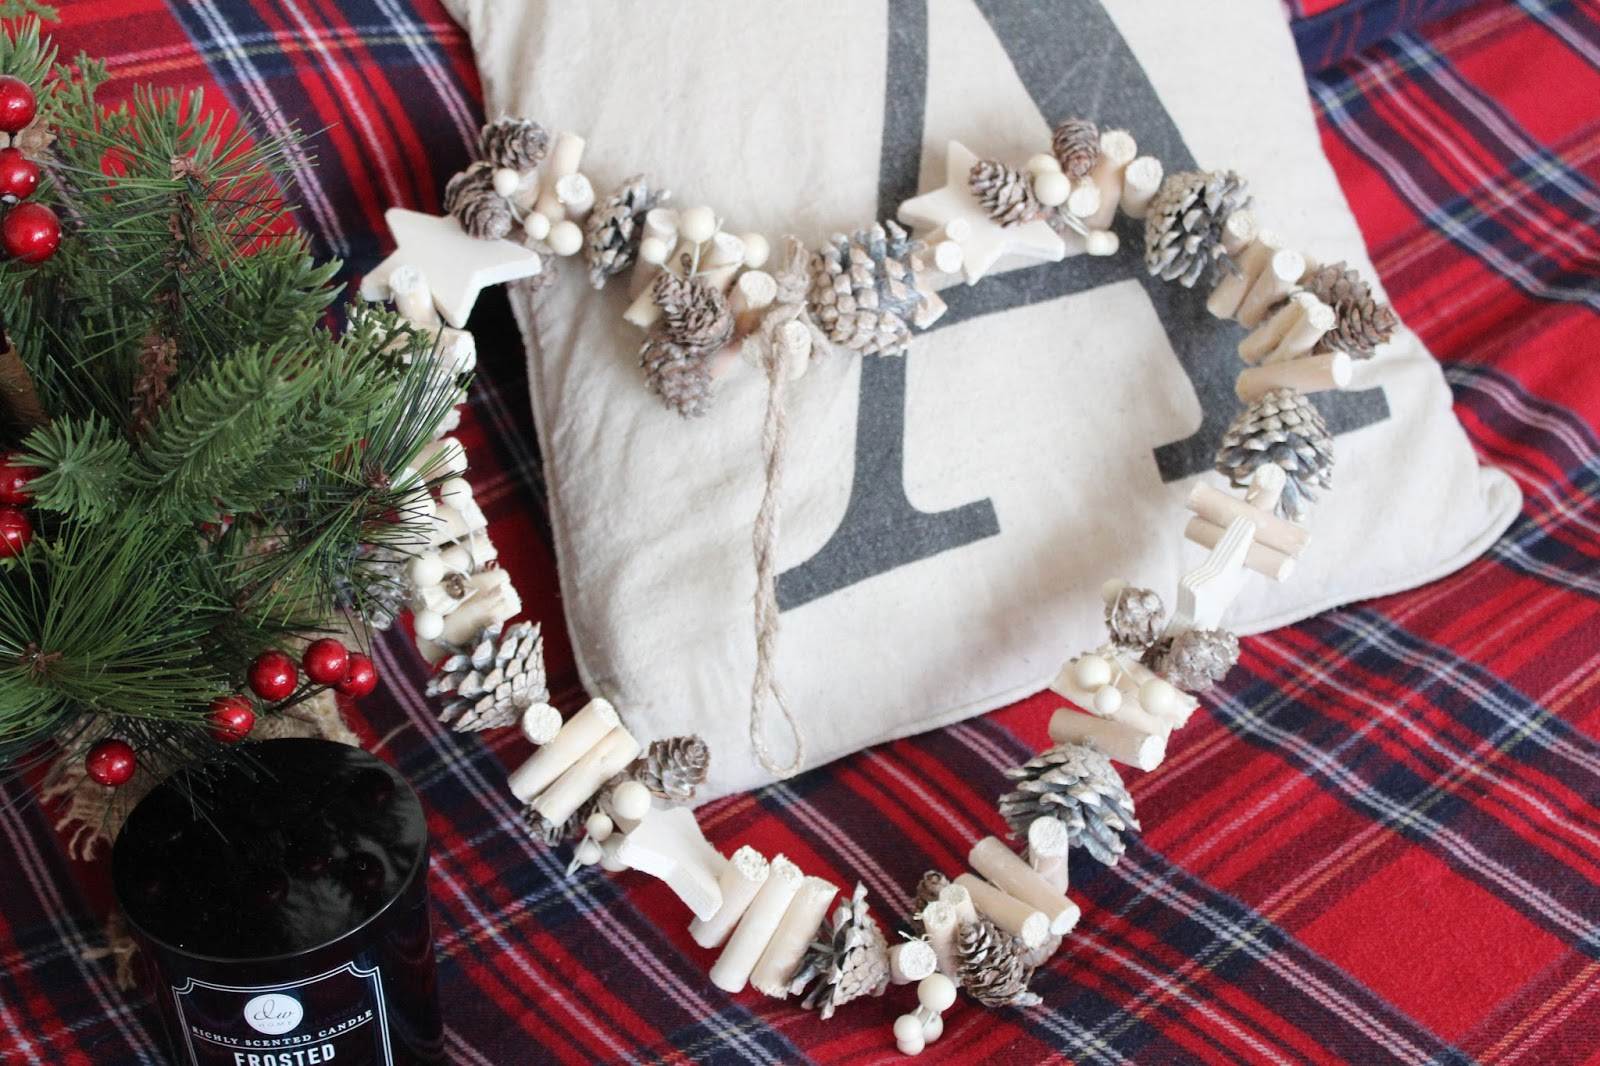 ... To Search Homesense On My Blog To See Just How Much, So It Was  Inevitable That Once Again, I Filled Up A Basket Full Of Christmas  Decorations To Bring ...